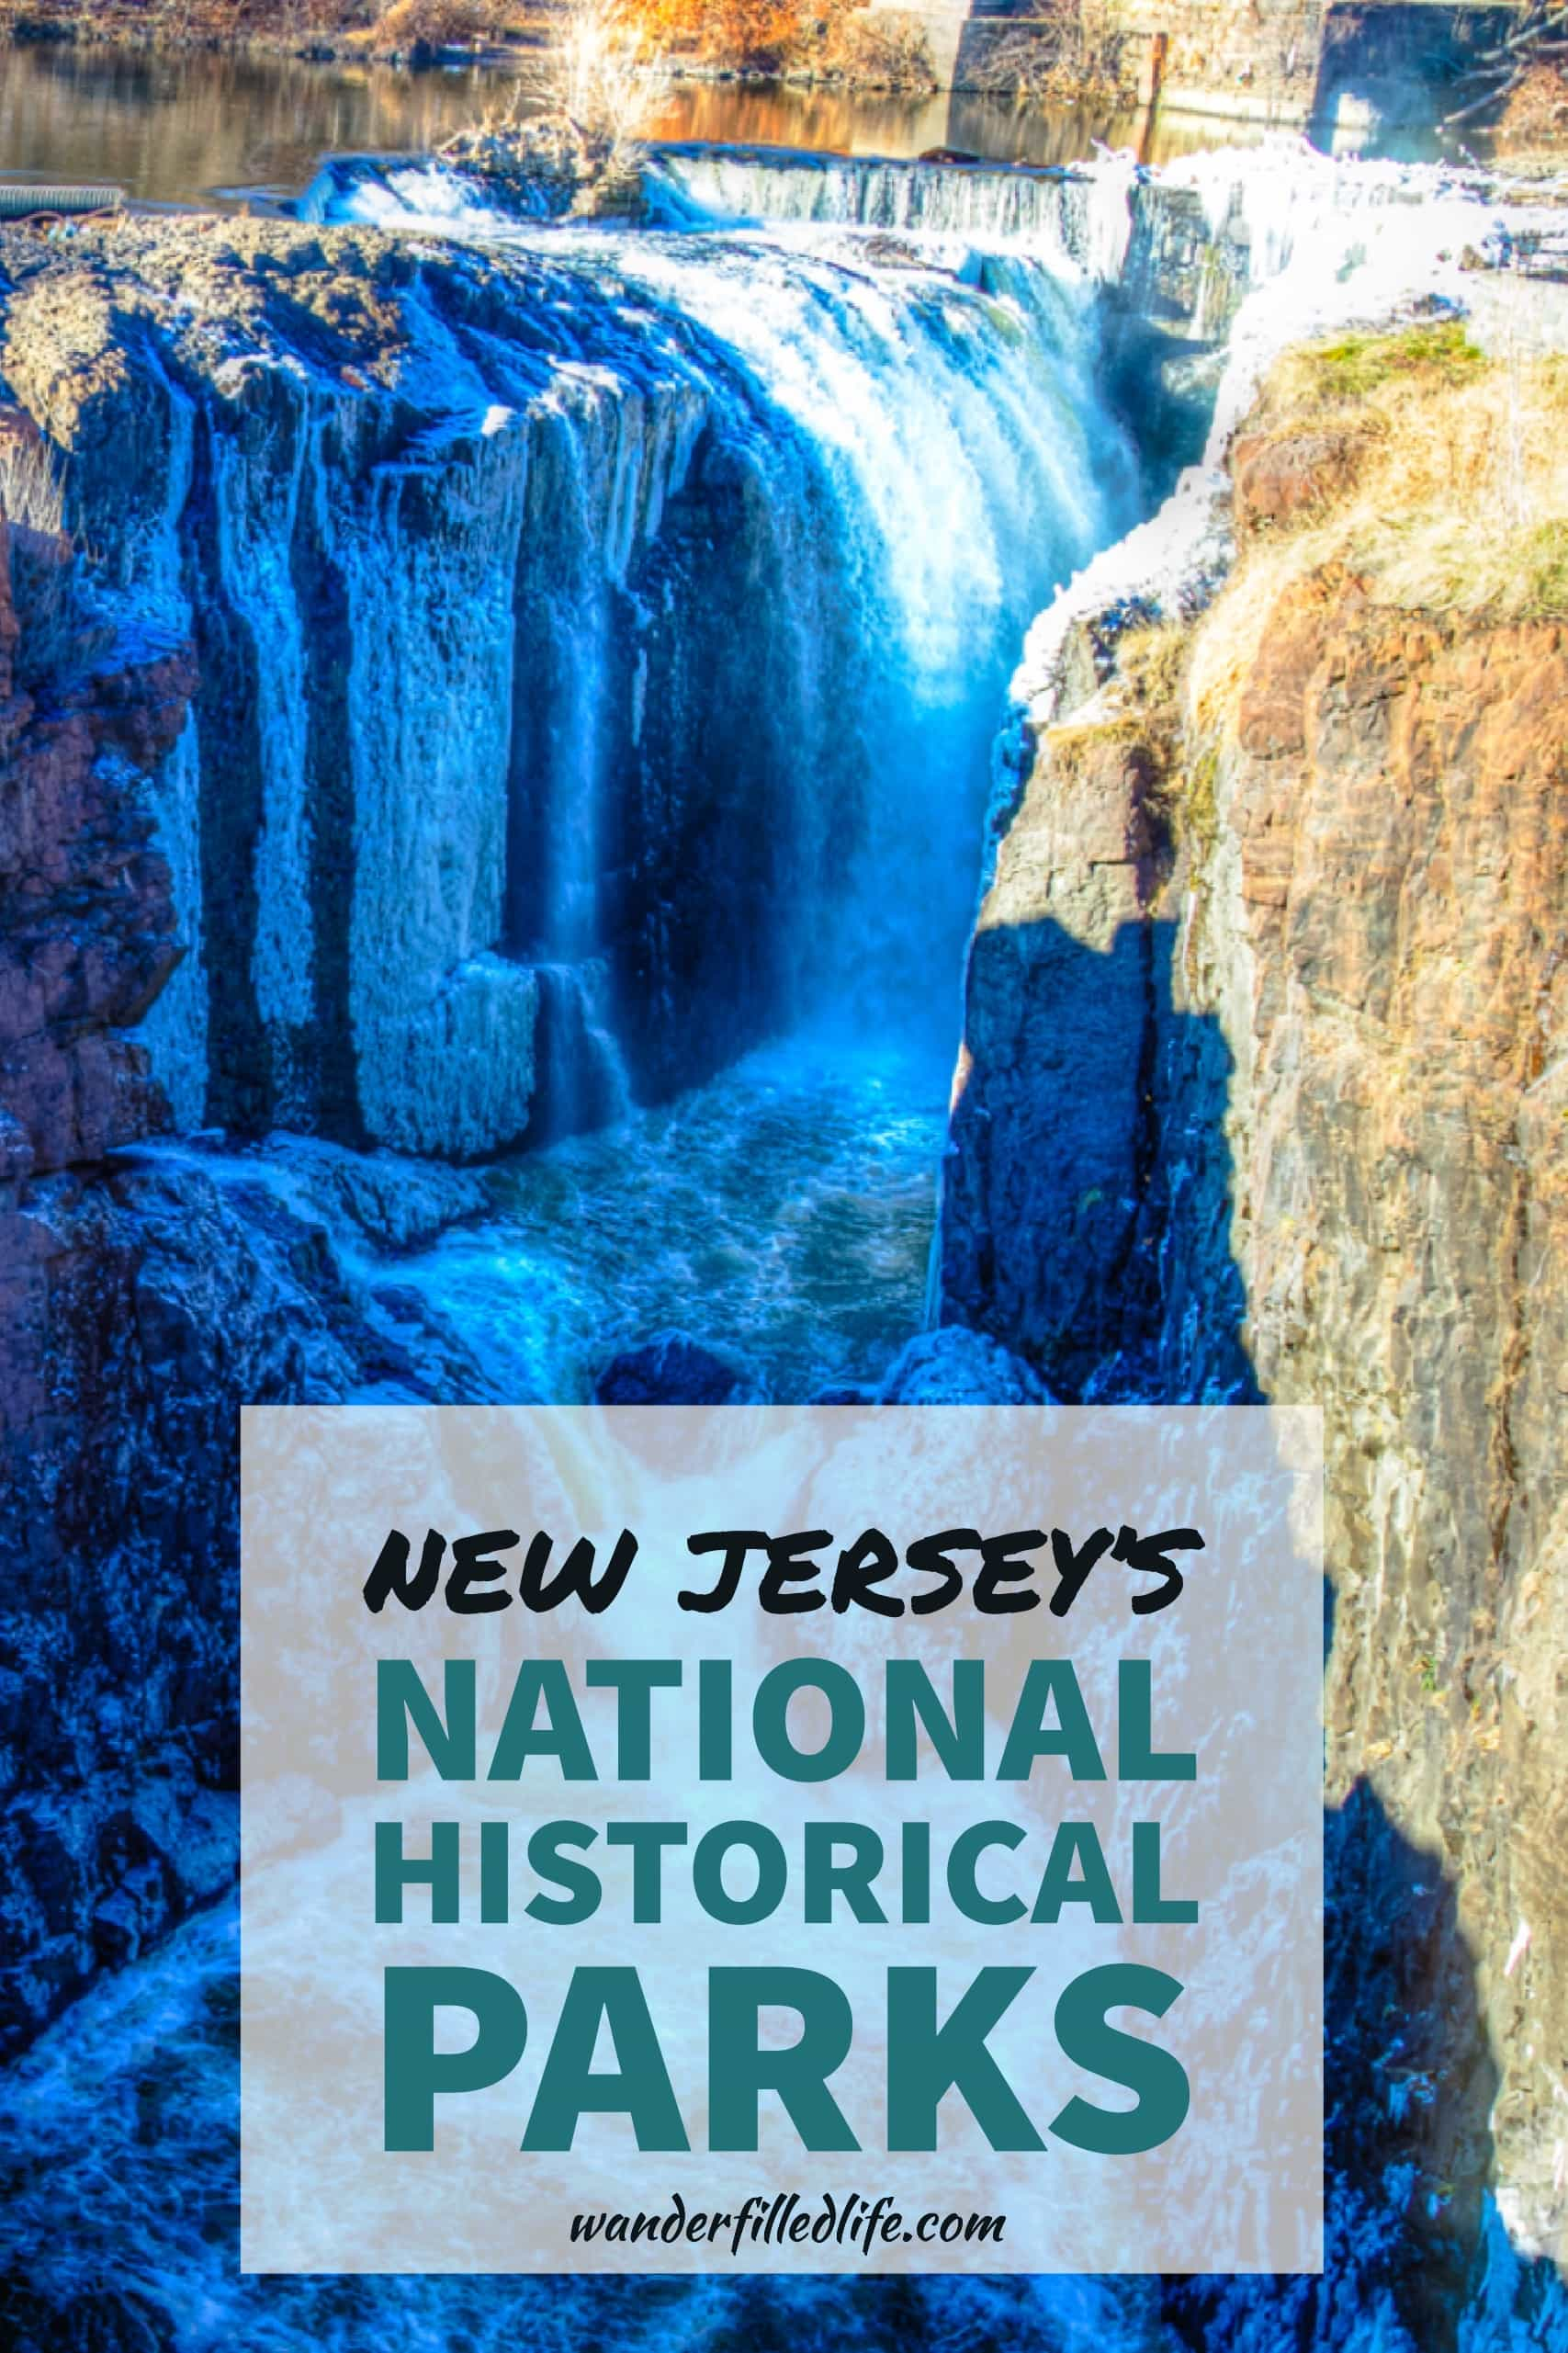 An inside look at the New Jersey National Historical Parks: Morristown NHP, Paterson Great Falls NHP and Thomas Edison NHP.